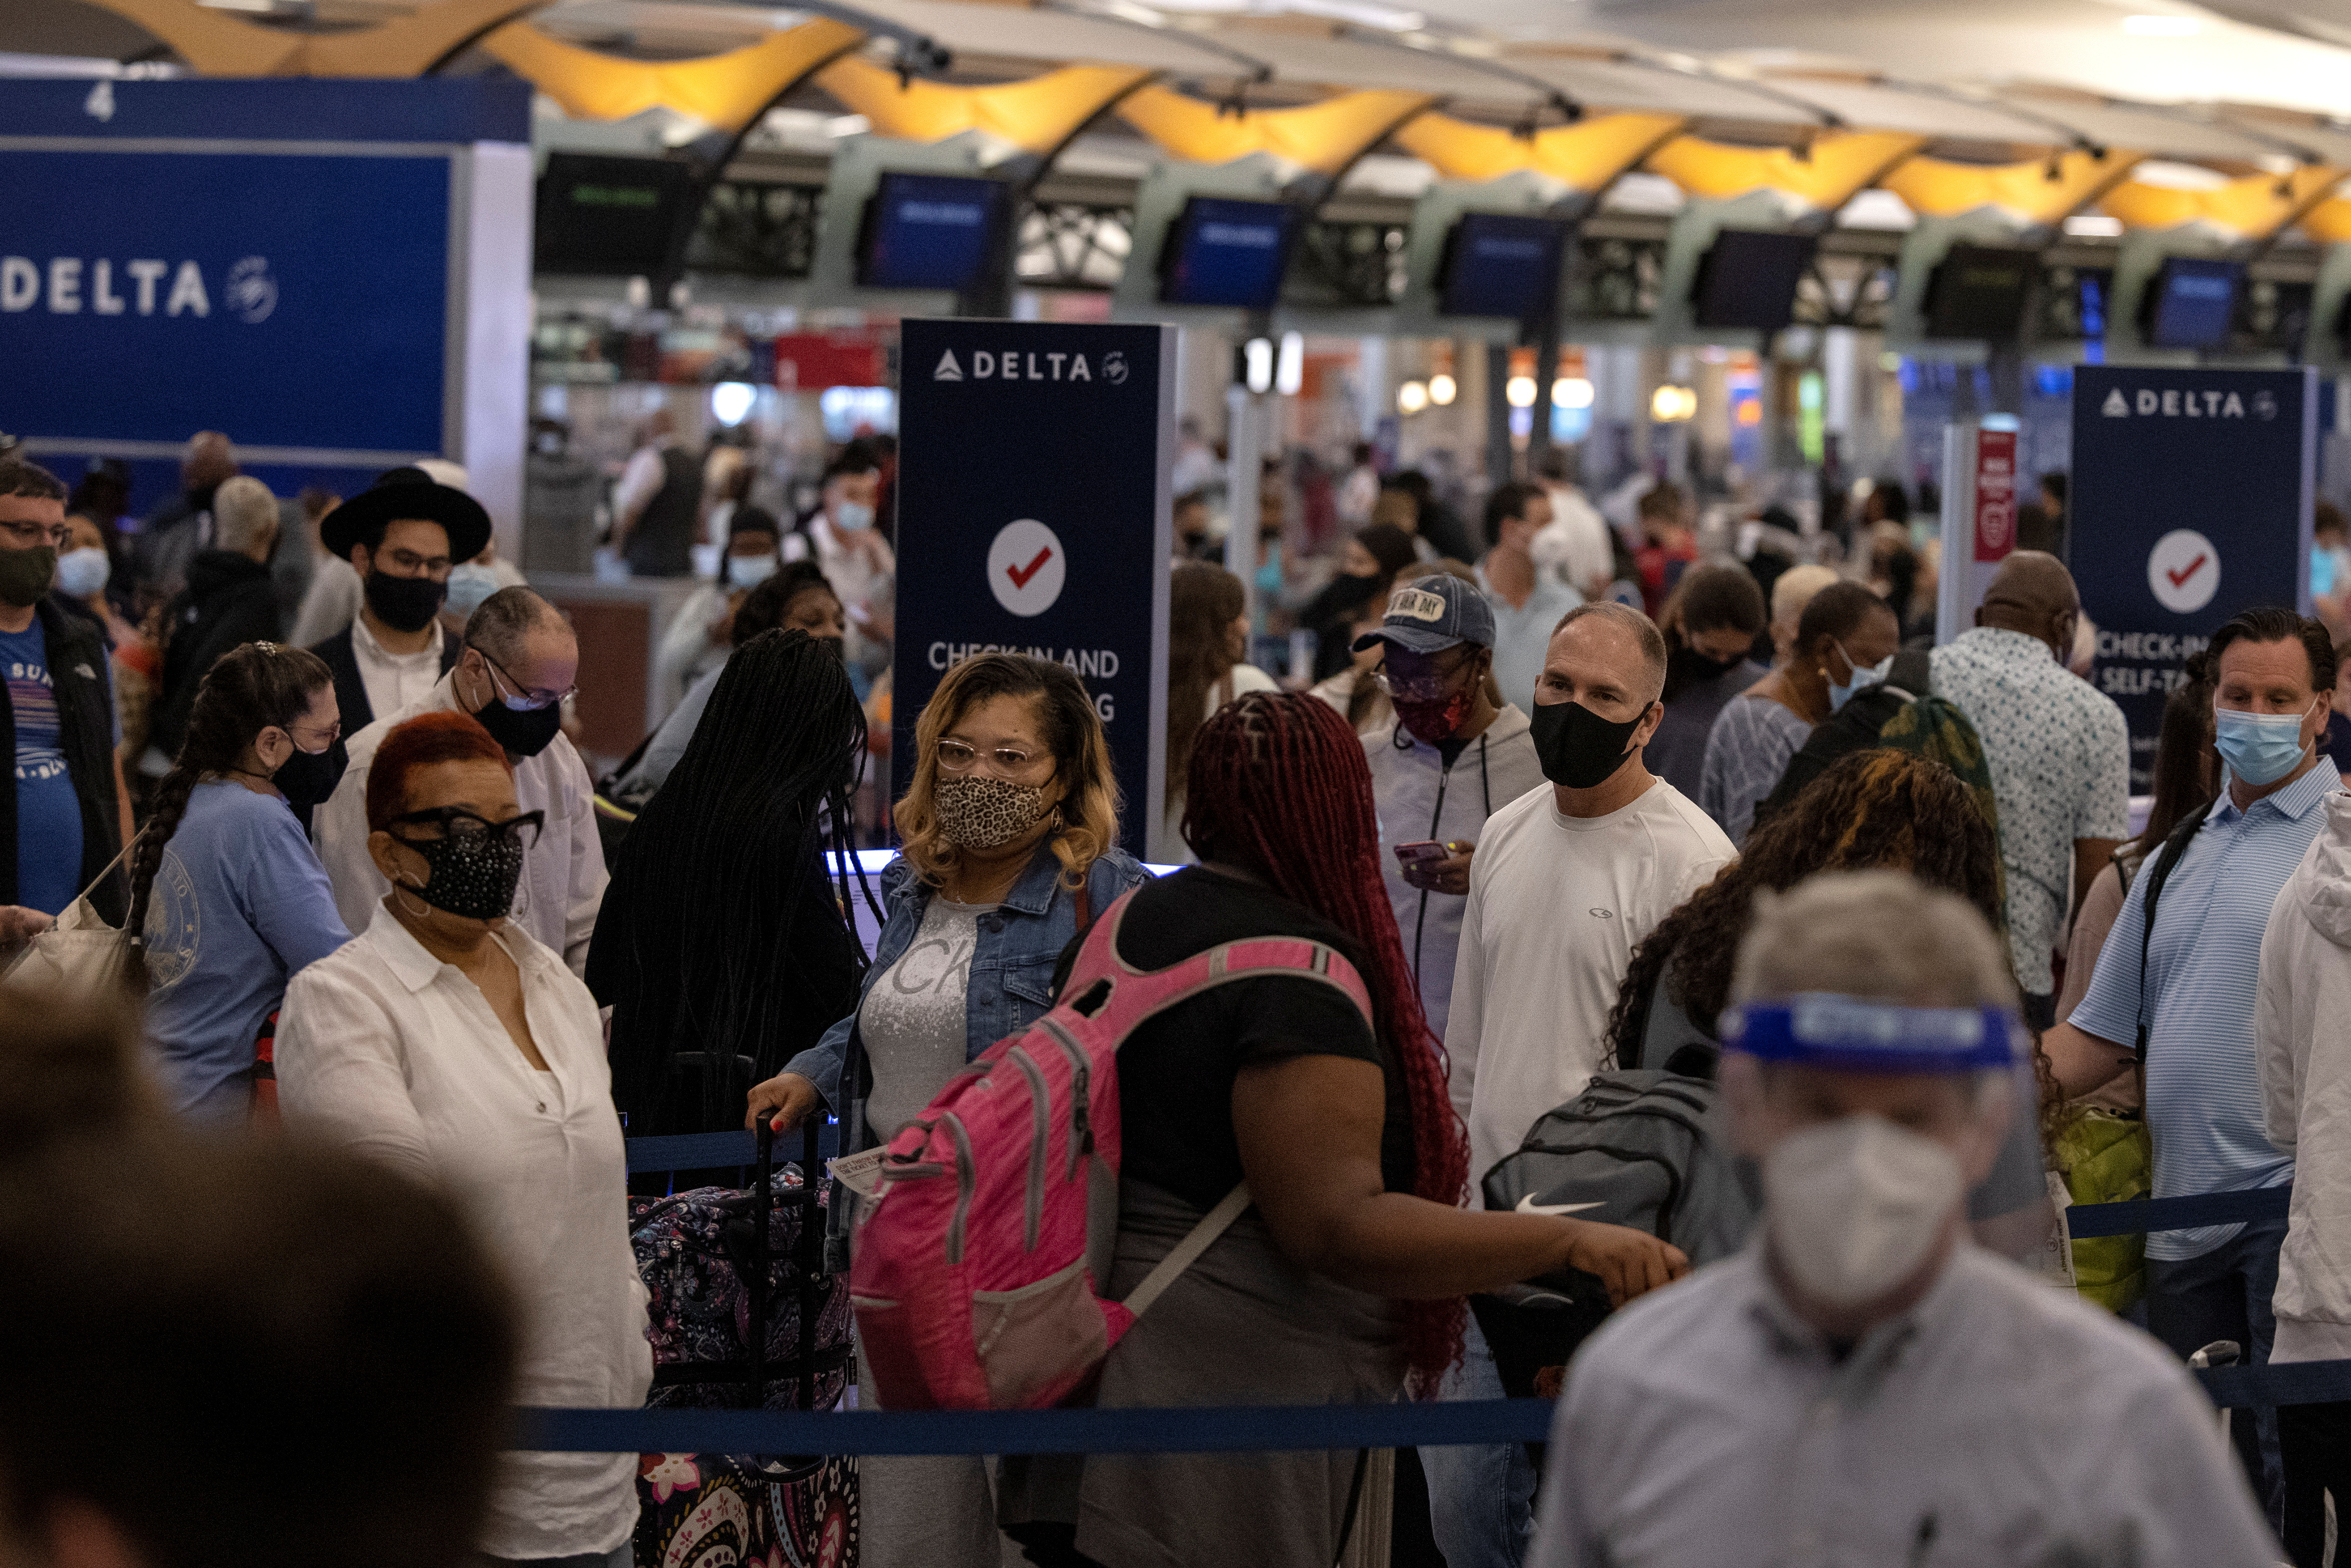 Passengers gather near Delta airline's counter as they check-in their luggage at Hartsfield-Jackson Atlanta International Airport, in Atlanta, Georgia, U.S., May 23, 2021.  REUTERS/Carlos Barria